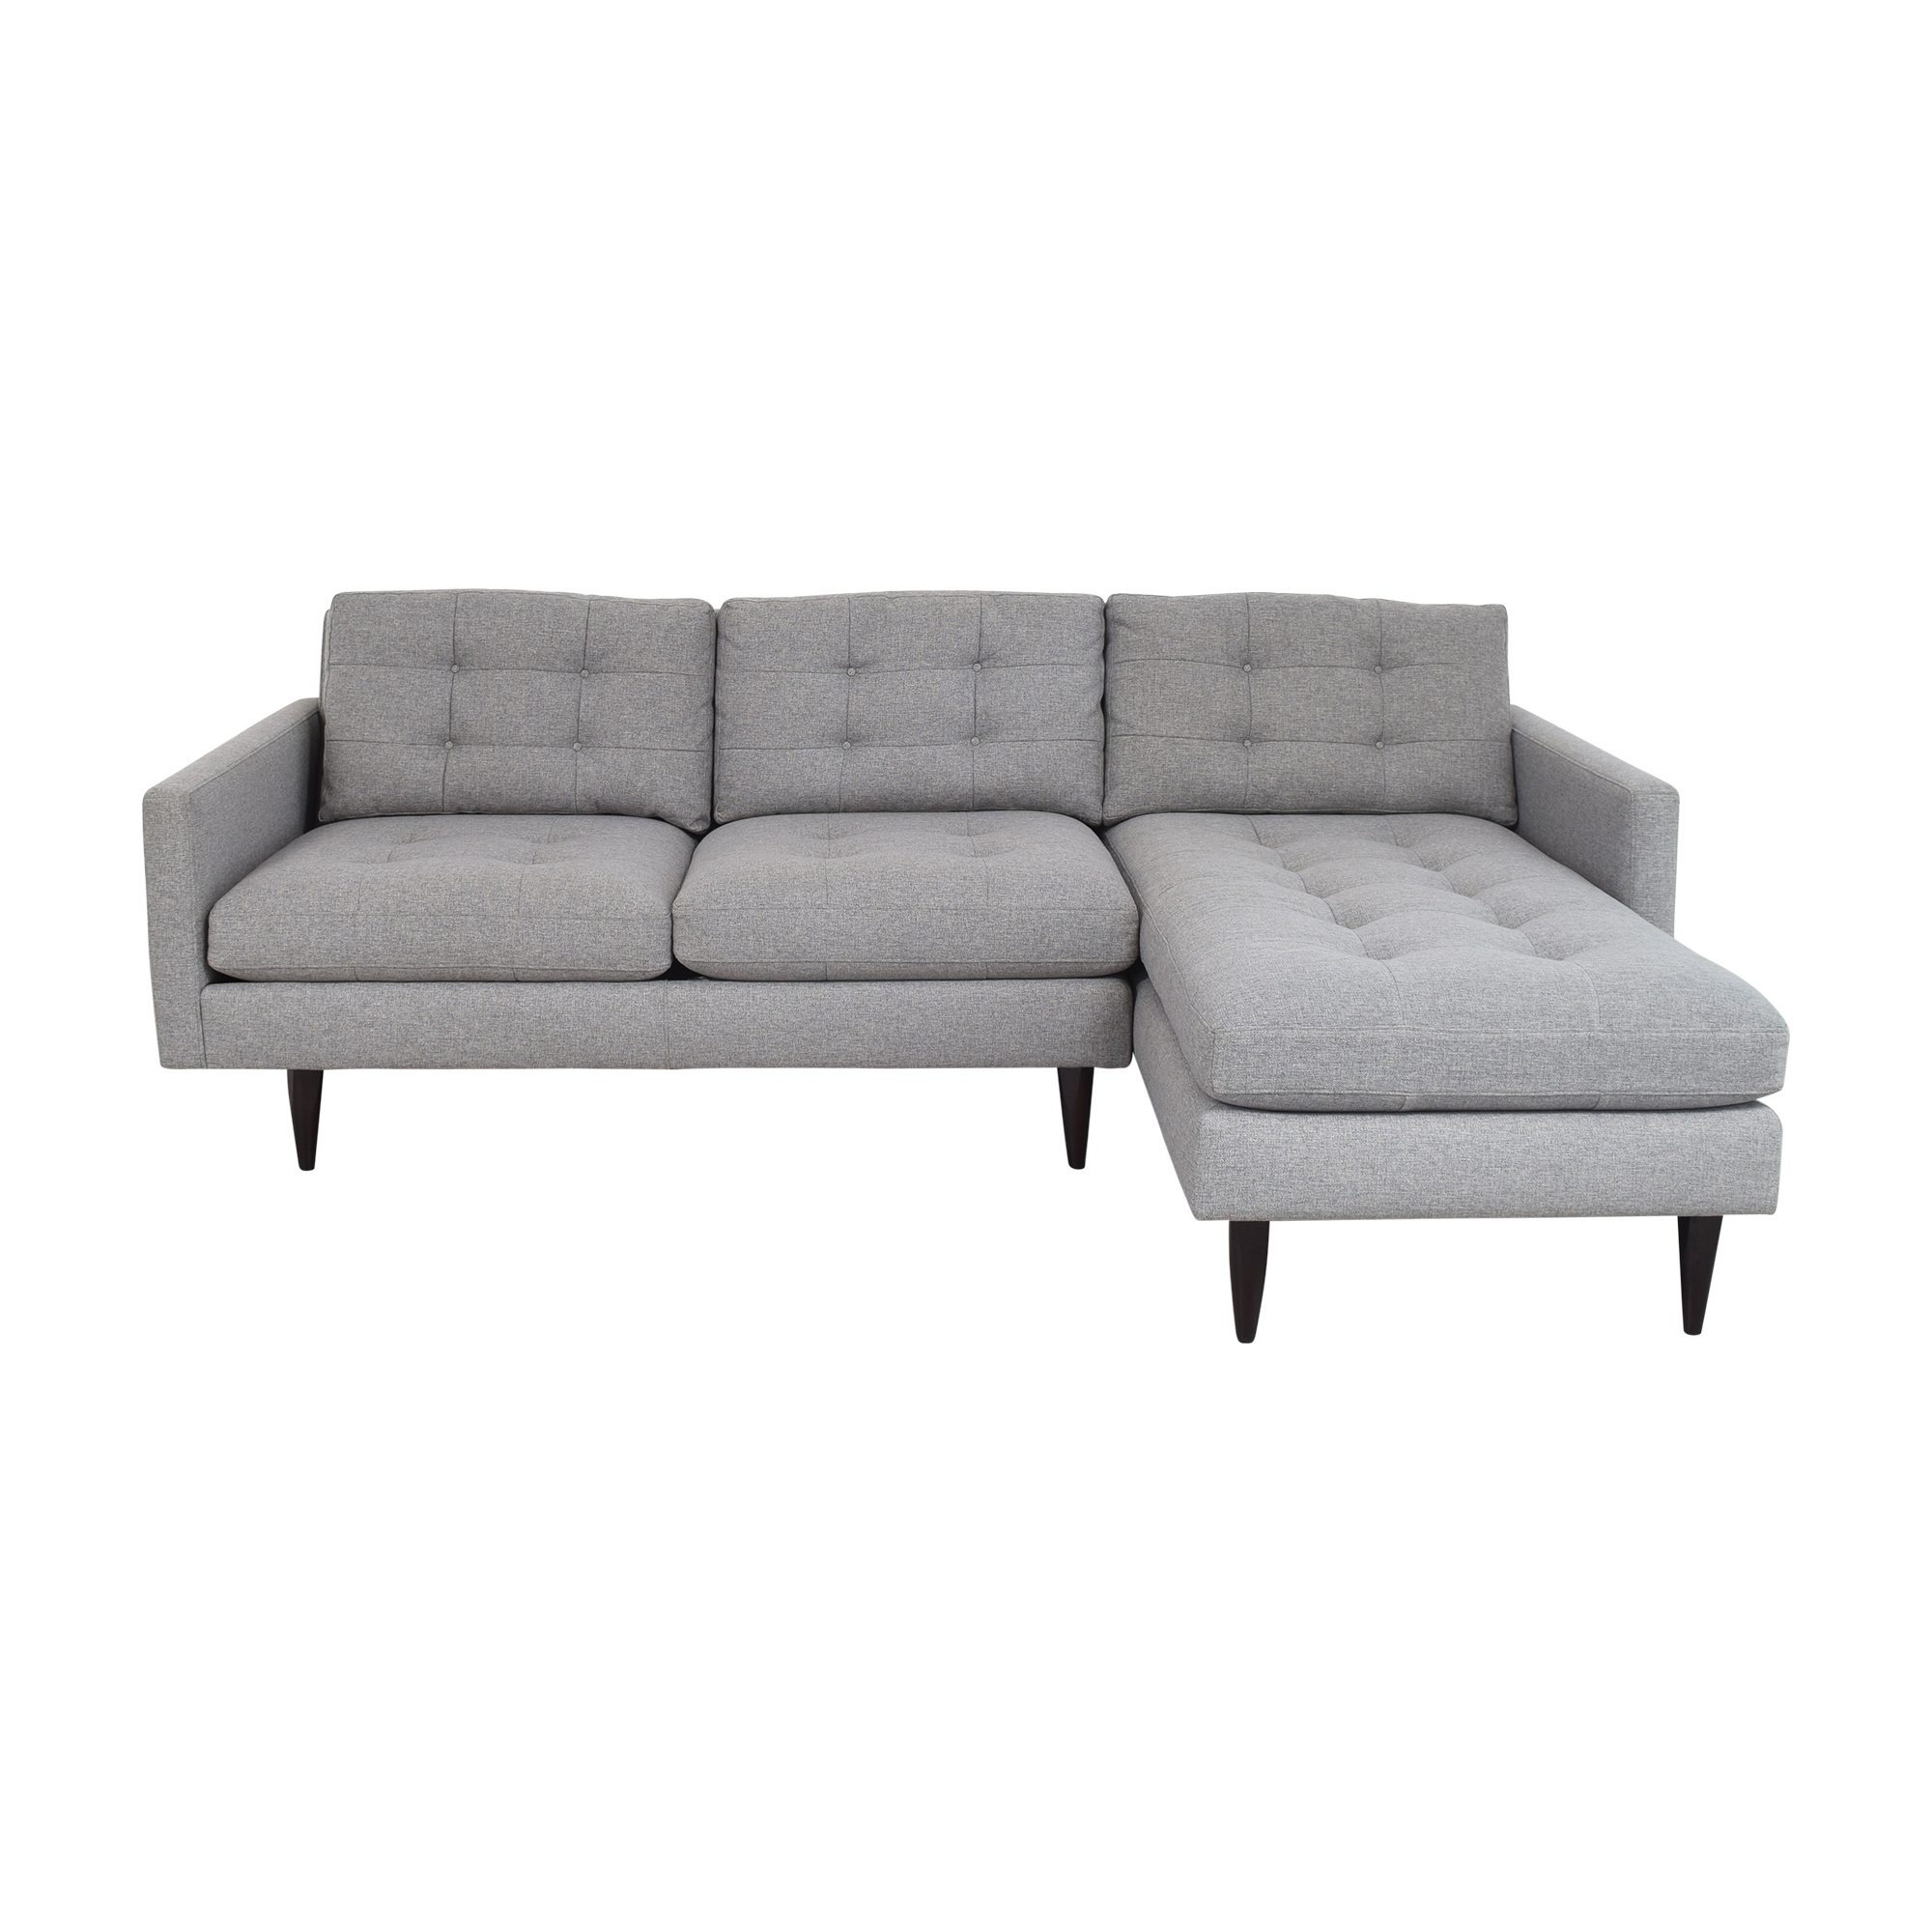 Crate & Barrel Crate & Barrel Petrie Two Piece Chaise Midcentury Sectional Sofa discount